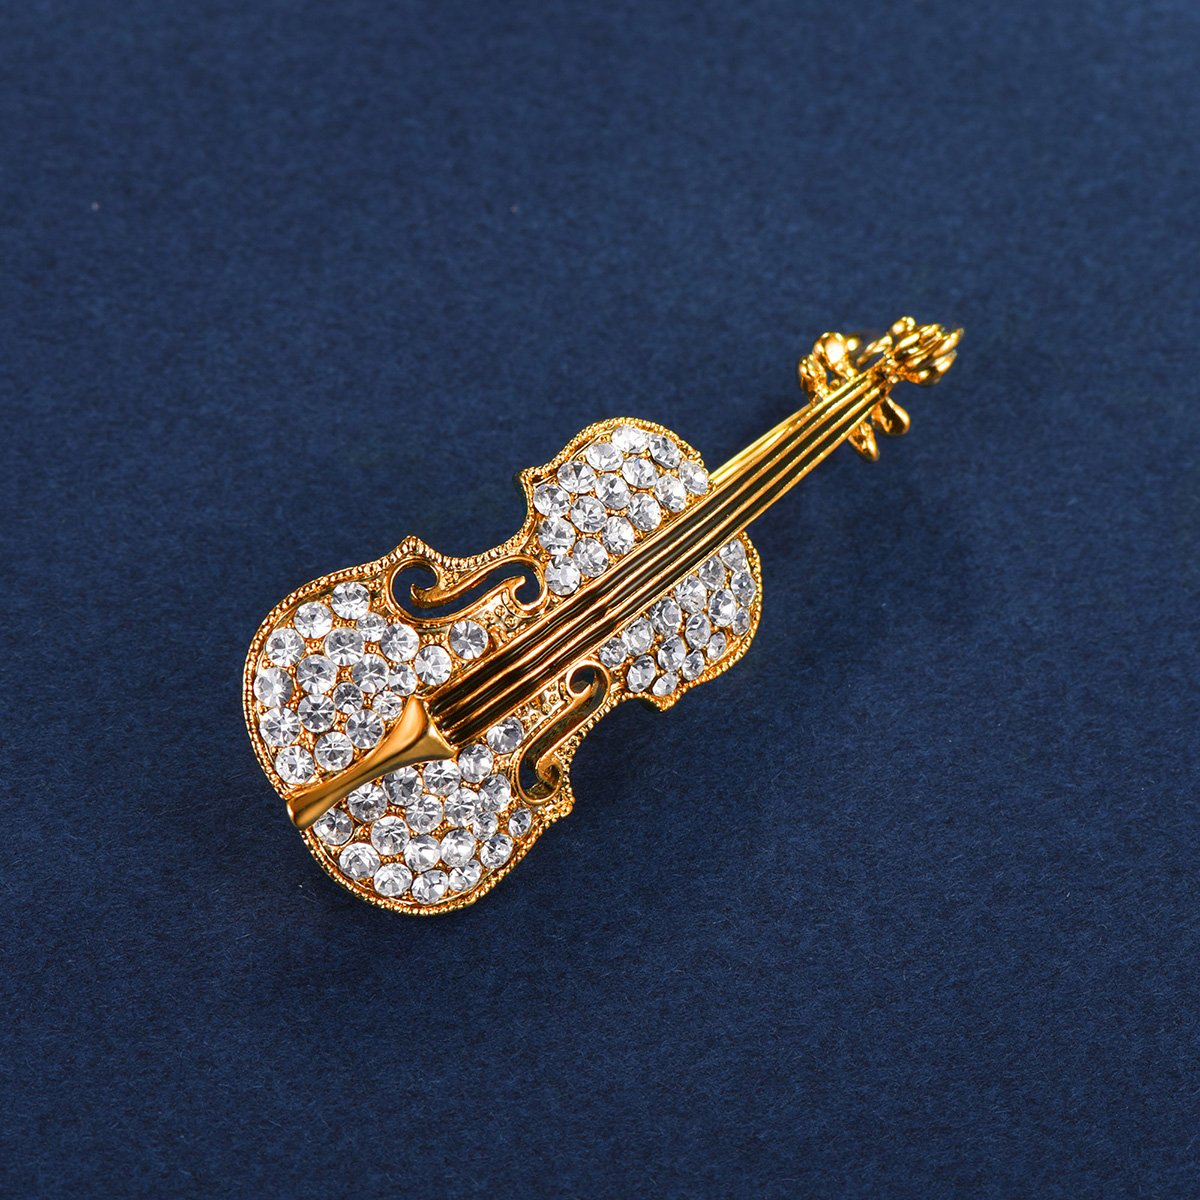 FOCALOOK Music Jewelry Gold Plated Rhinestone Crystal Violin Brooch Pin for Women Girls Art Deco Christmas Jewelry